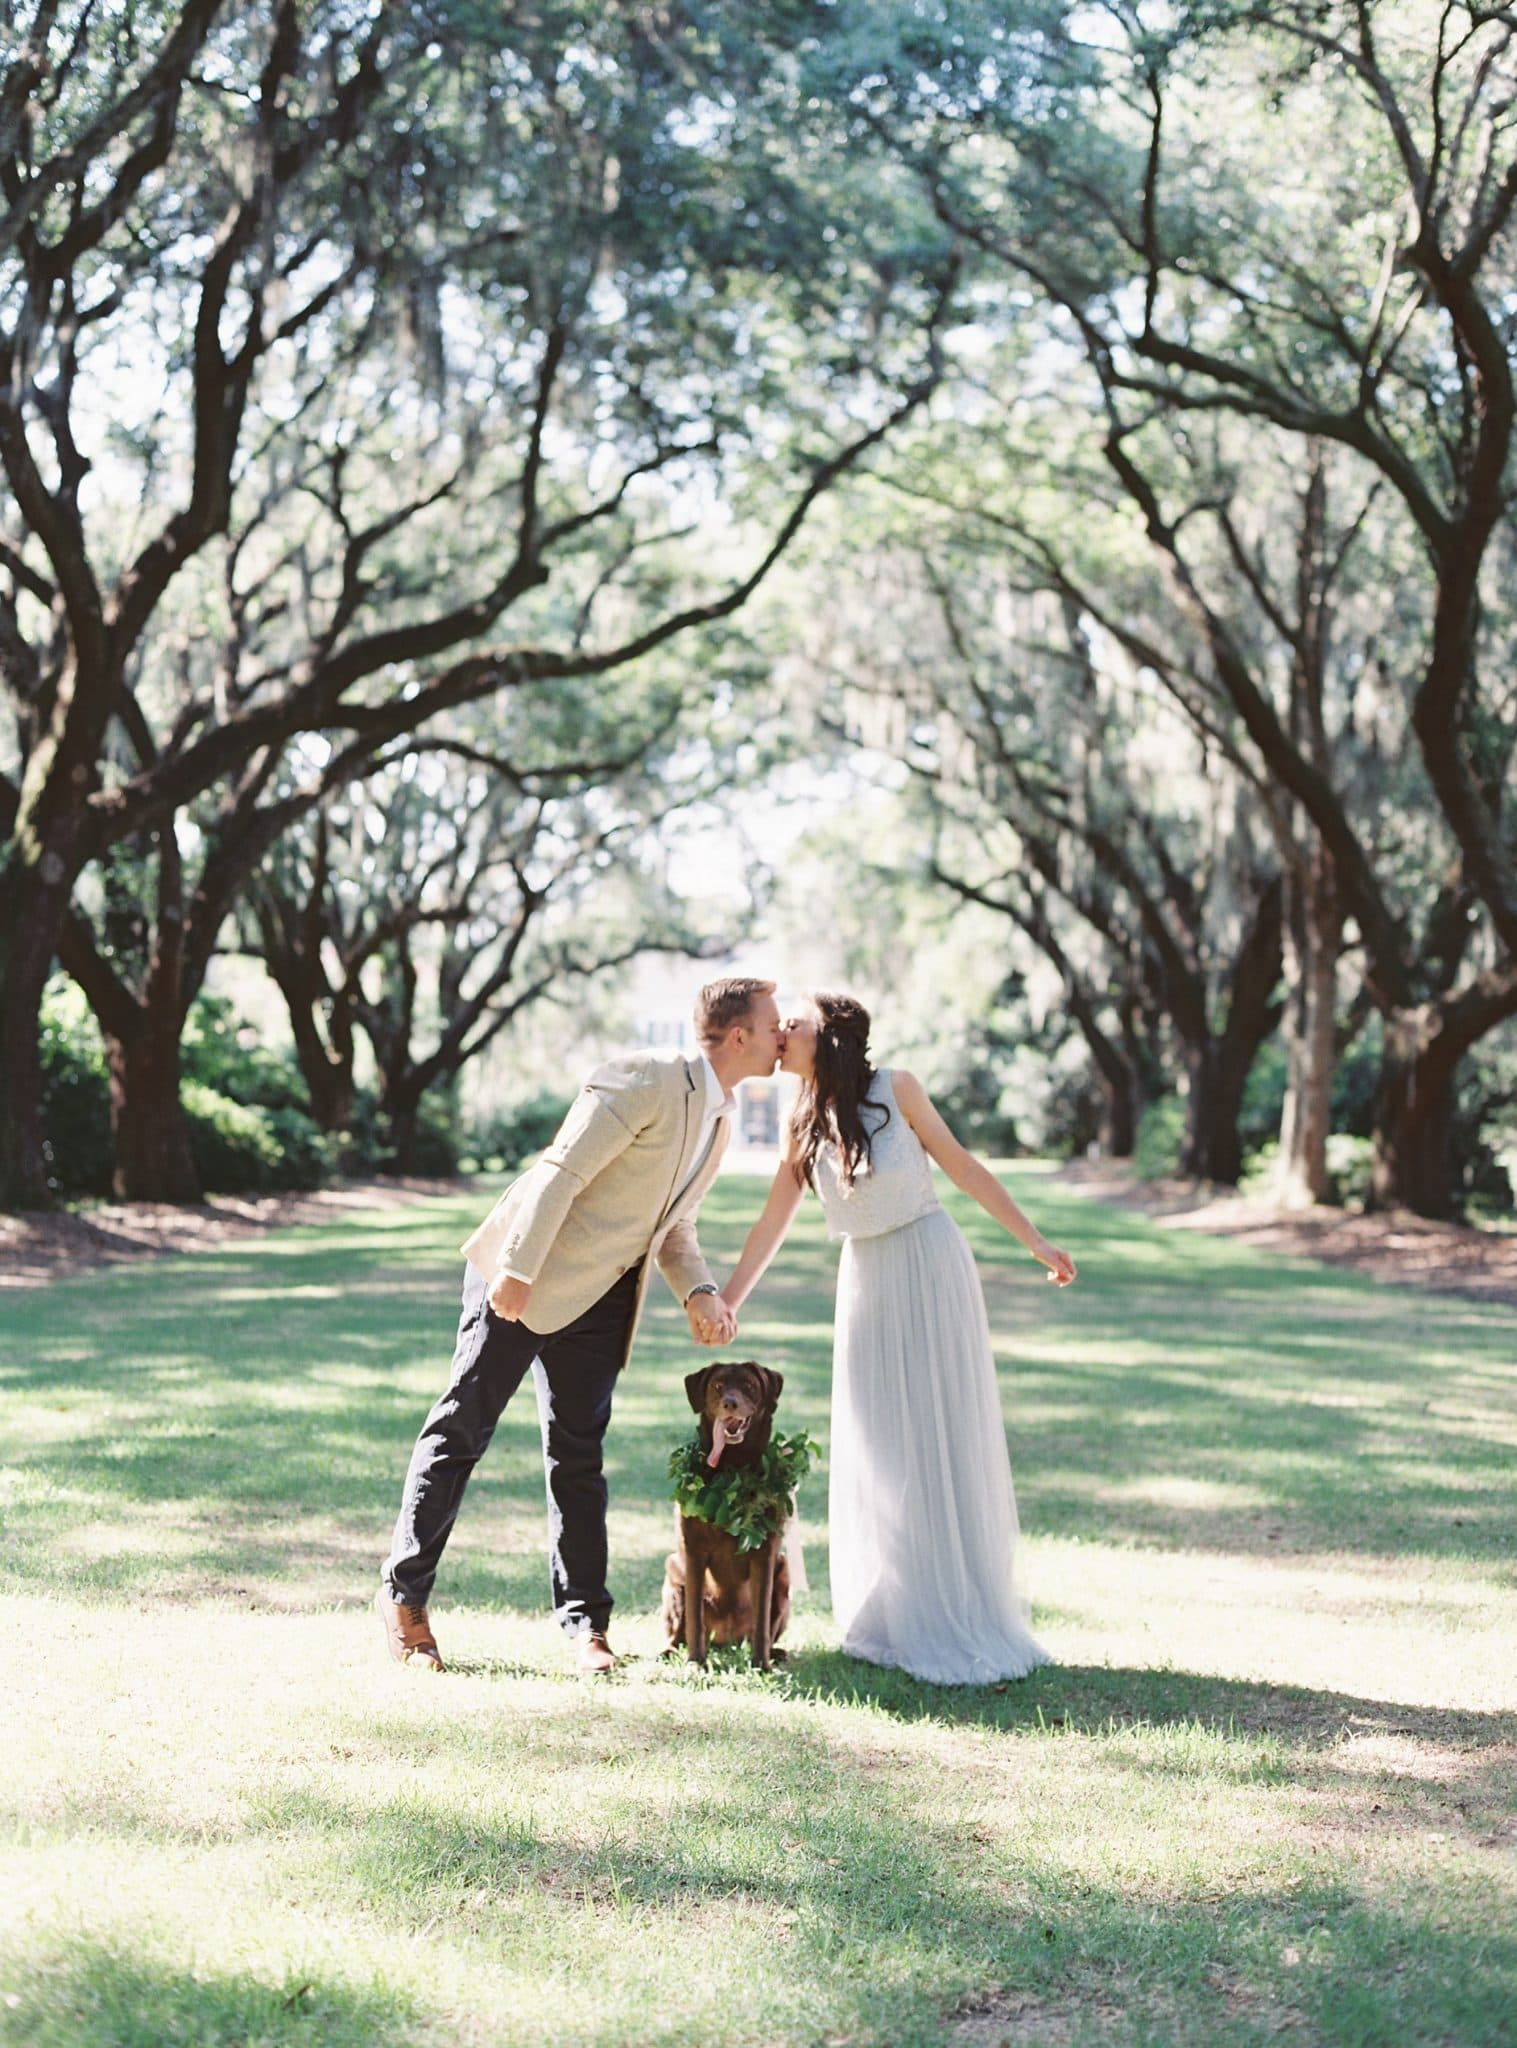 charleston engagement photos, legare waring house, donna morgan bridesmaid dress two piece, dog floral crown, dog greenery, engagement photo outfit, charleston wedding venue, pretty in the pines blog, style me pretty blogger bride, charleston wedding, jake and heather photography, miele events, meg workman hair and makeup